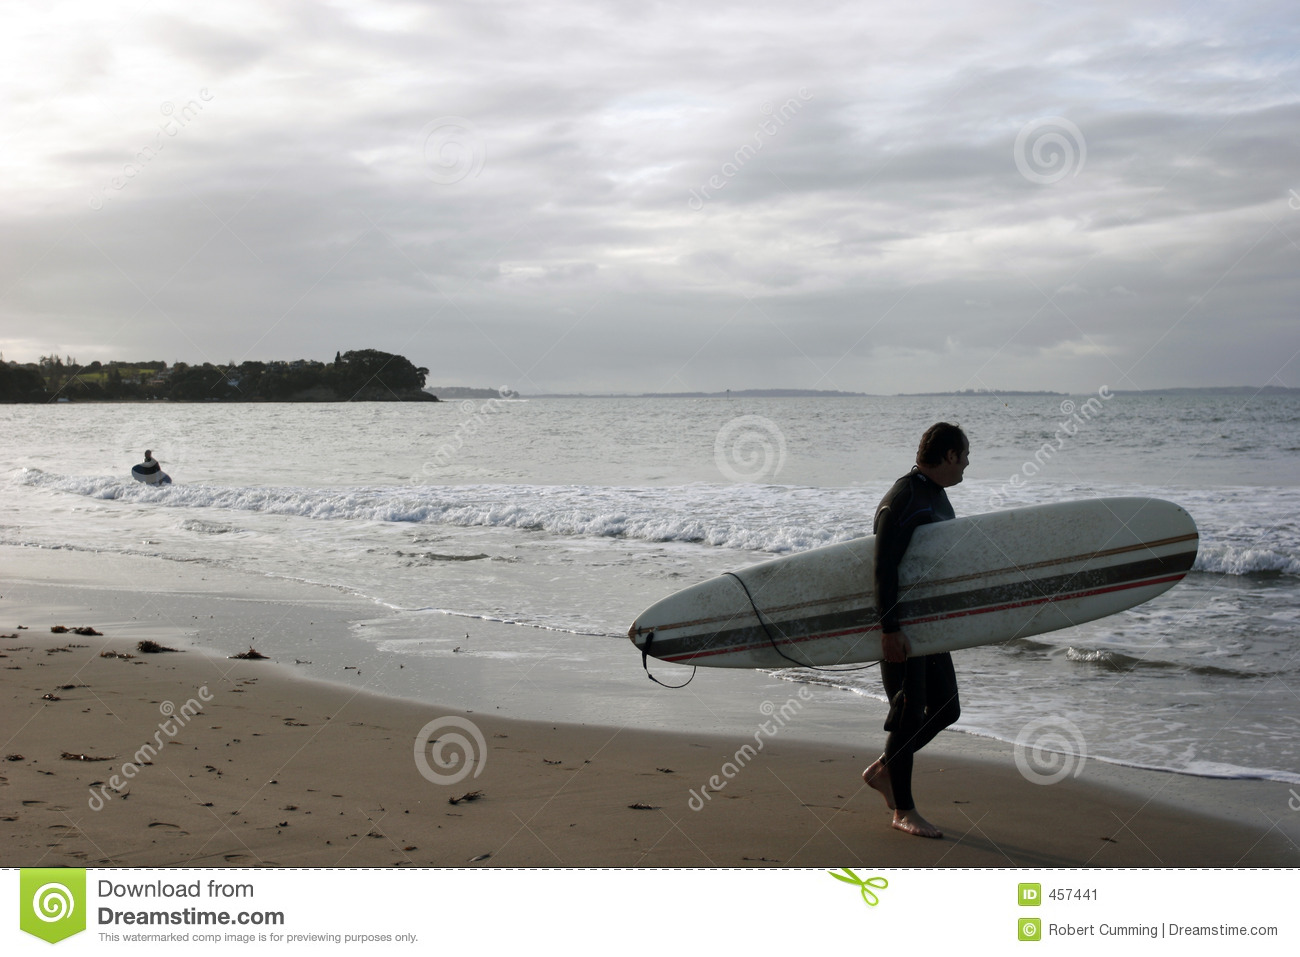 Surfer on beach watching waves